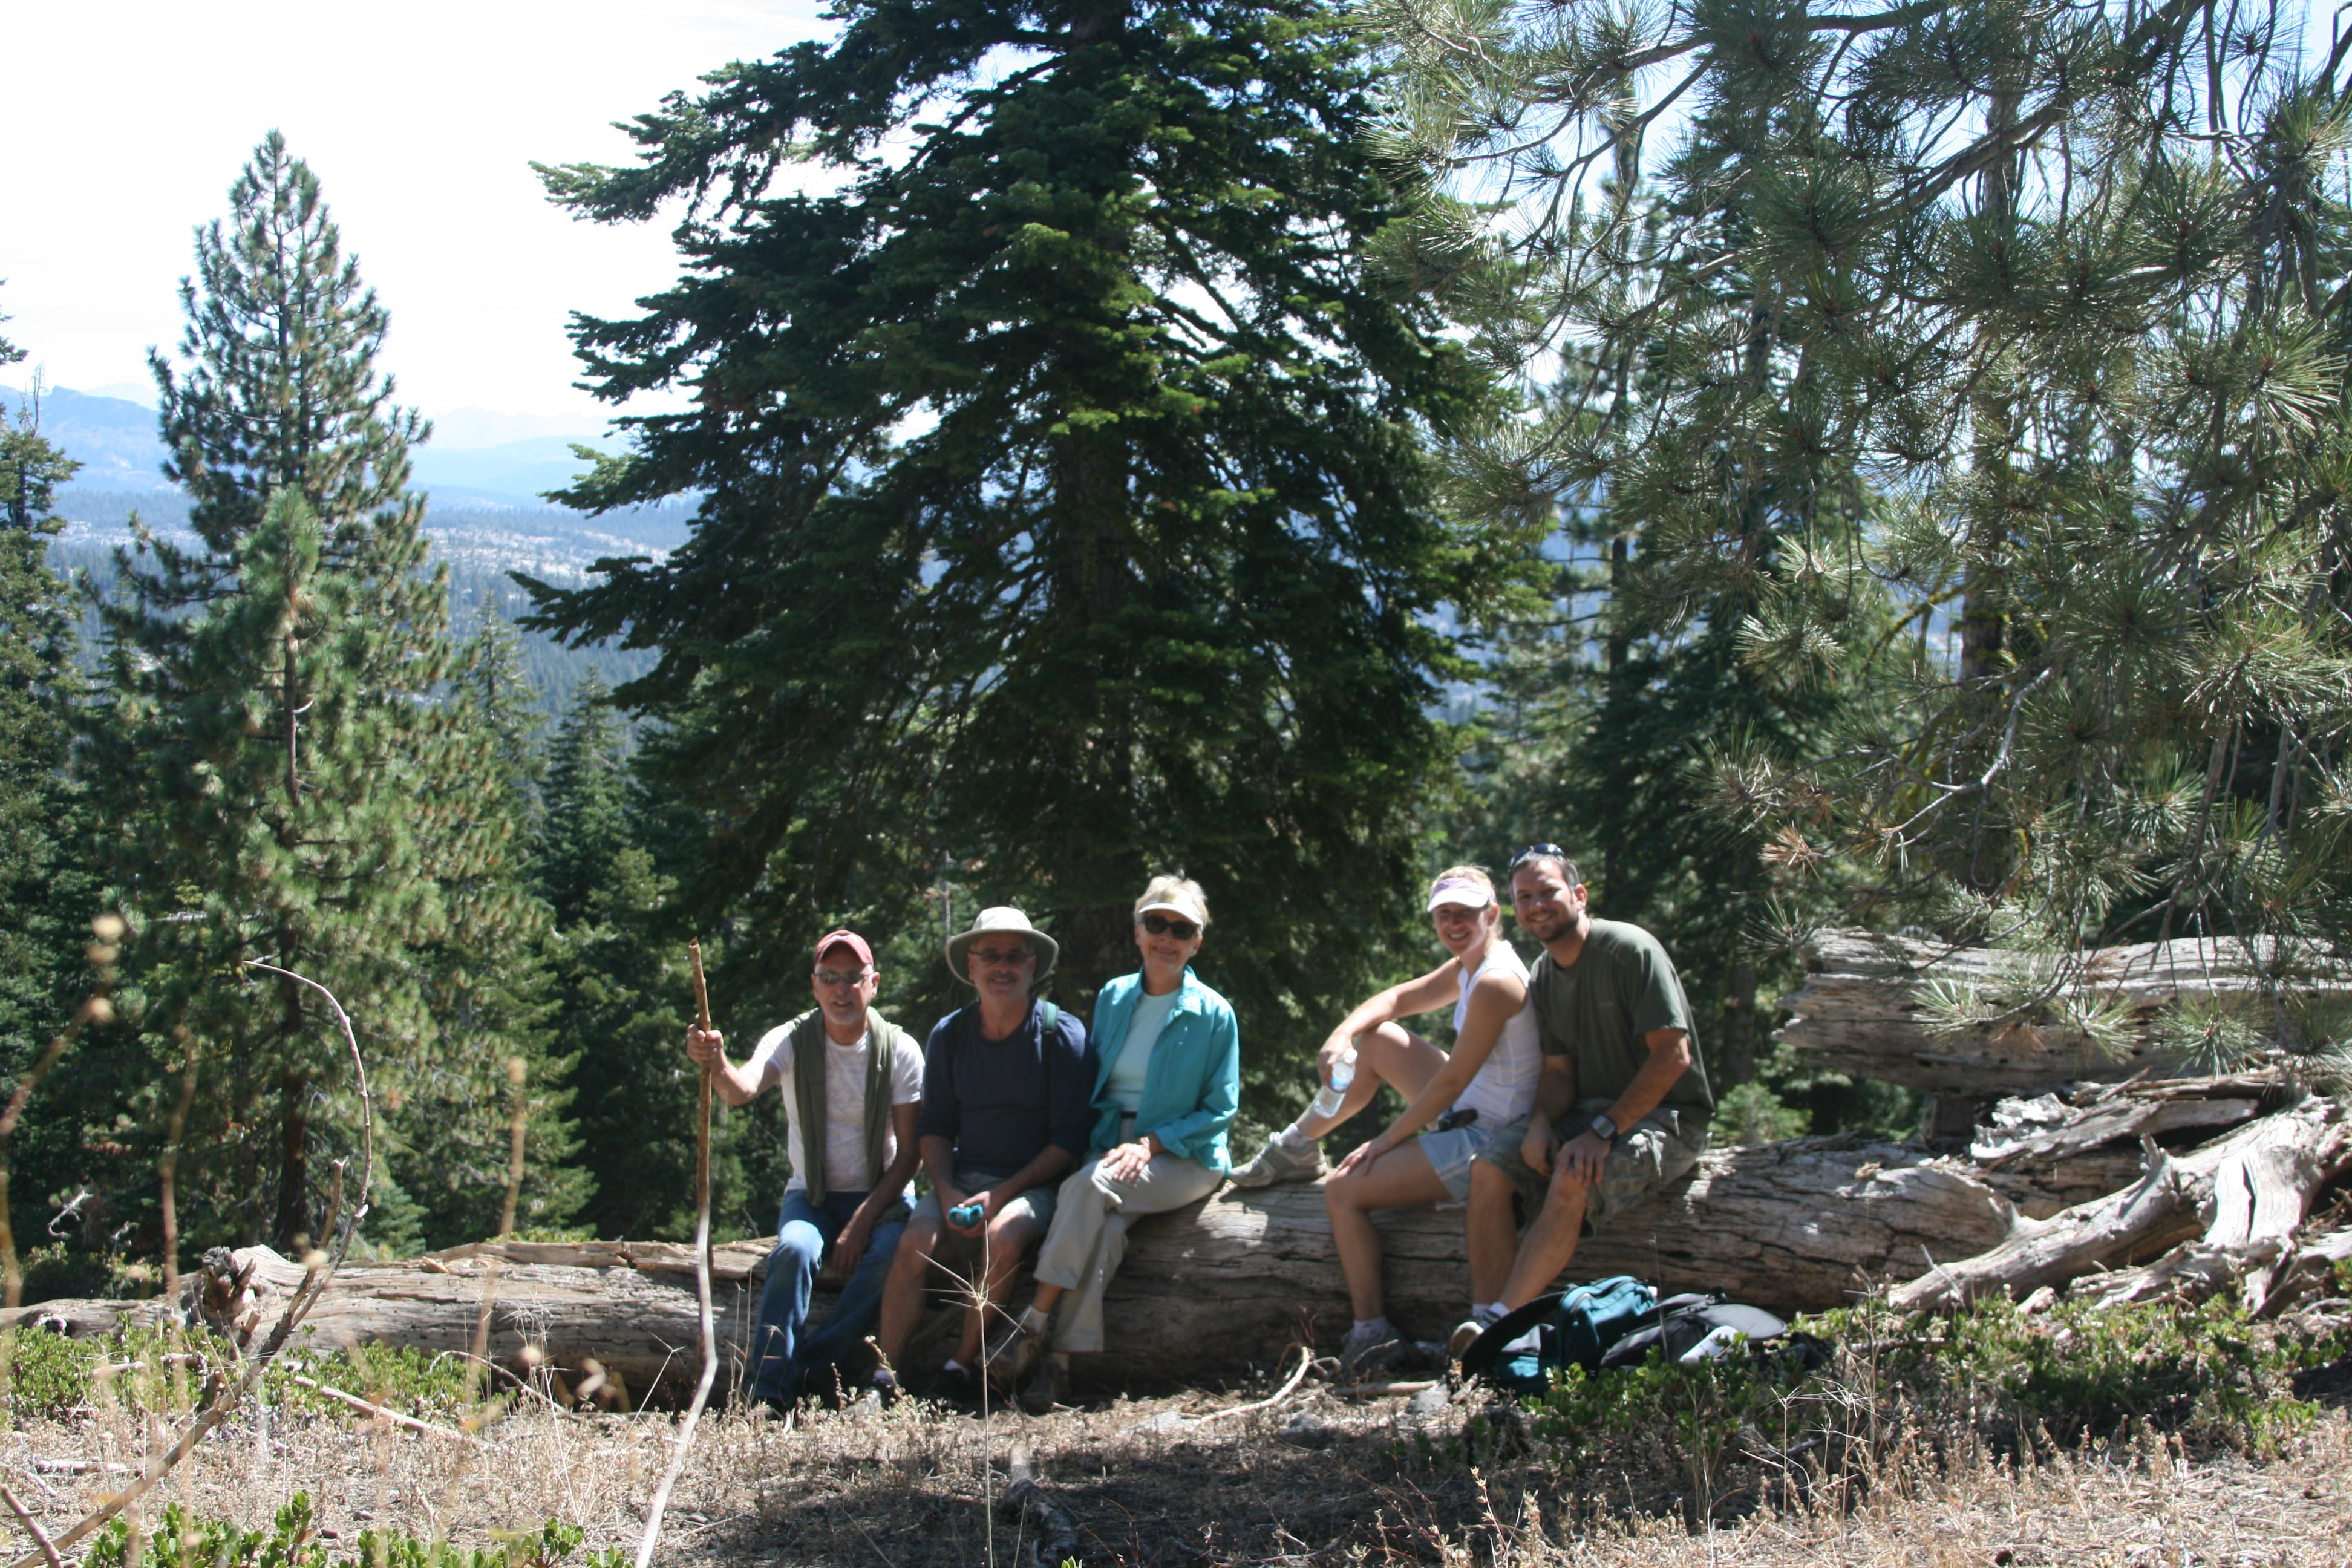 The whole family hiking in the Sierra's near Bear Valley, CA